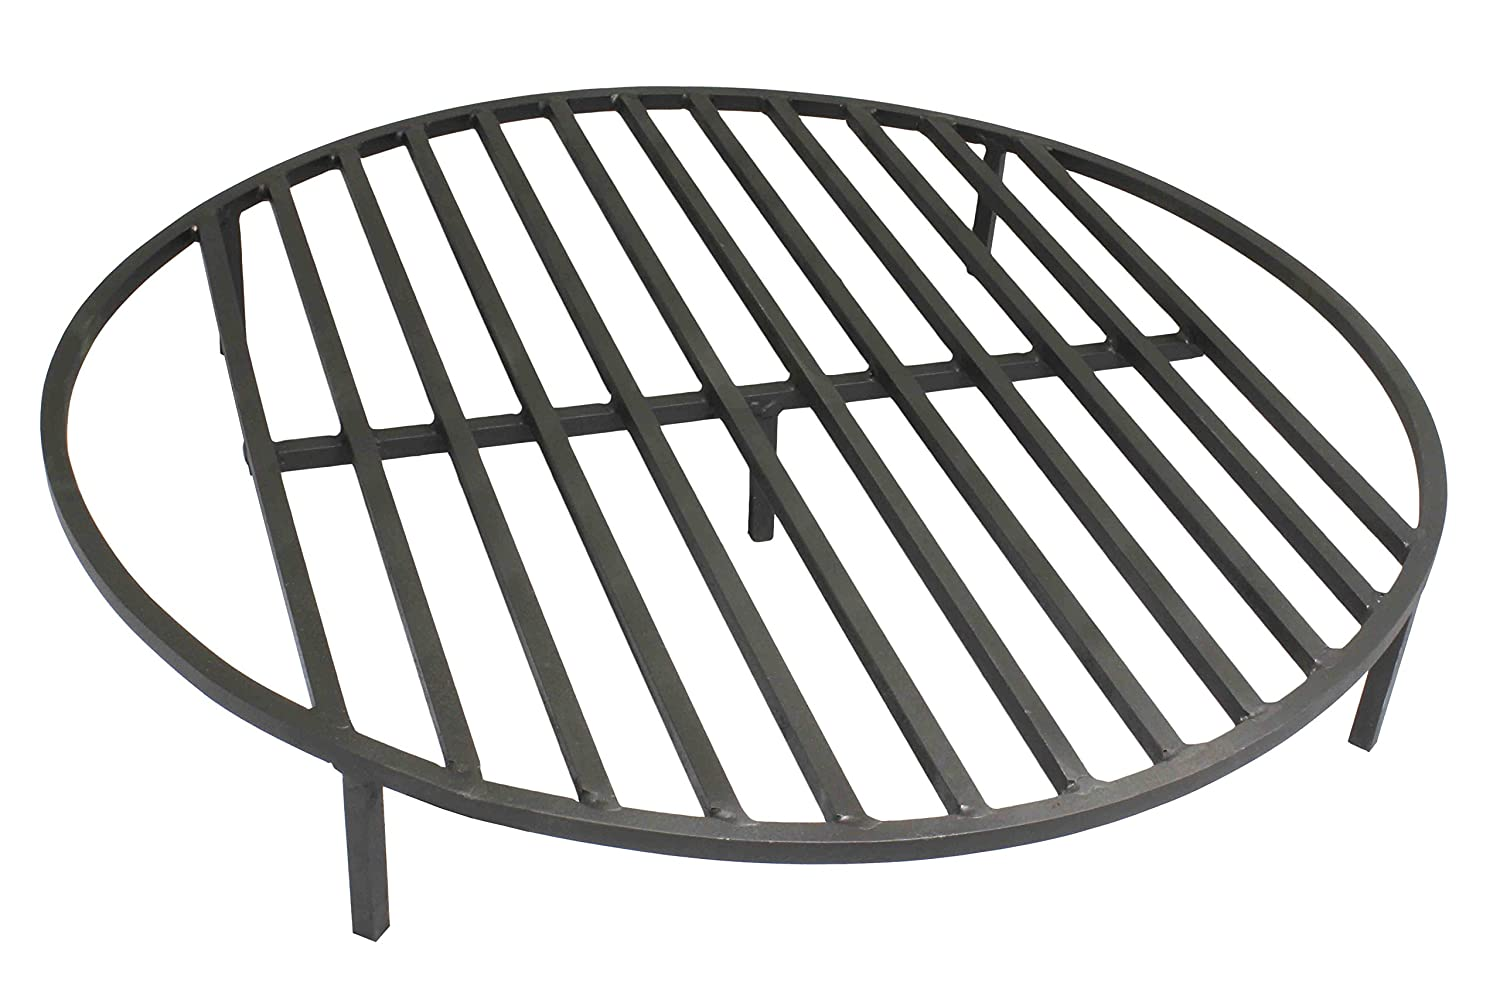 Titan Great Outdoors 36 Heavy Duty Round Fire Pit Grate